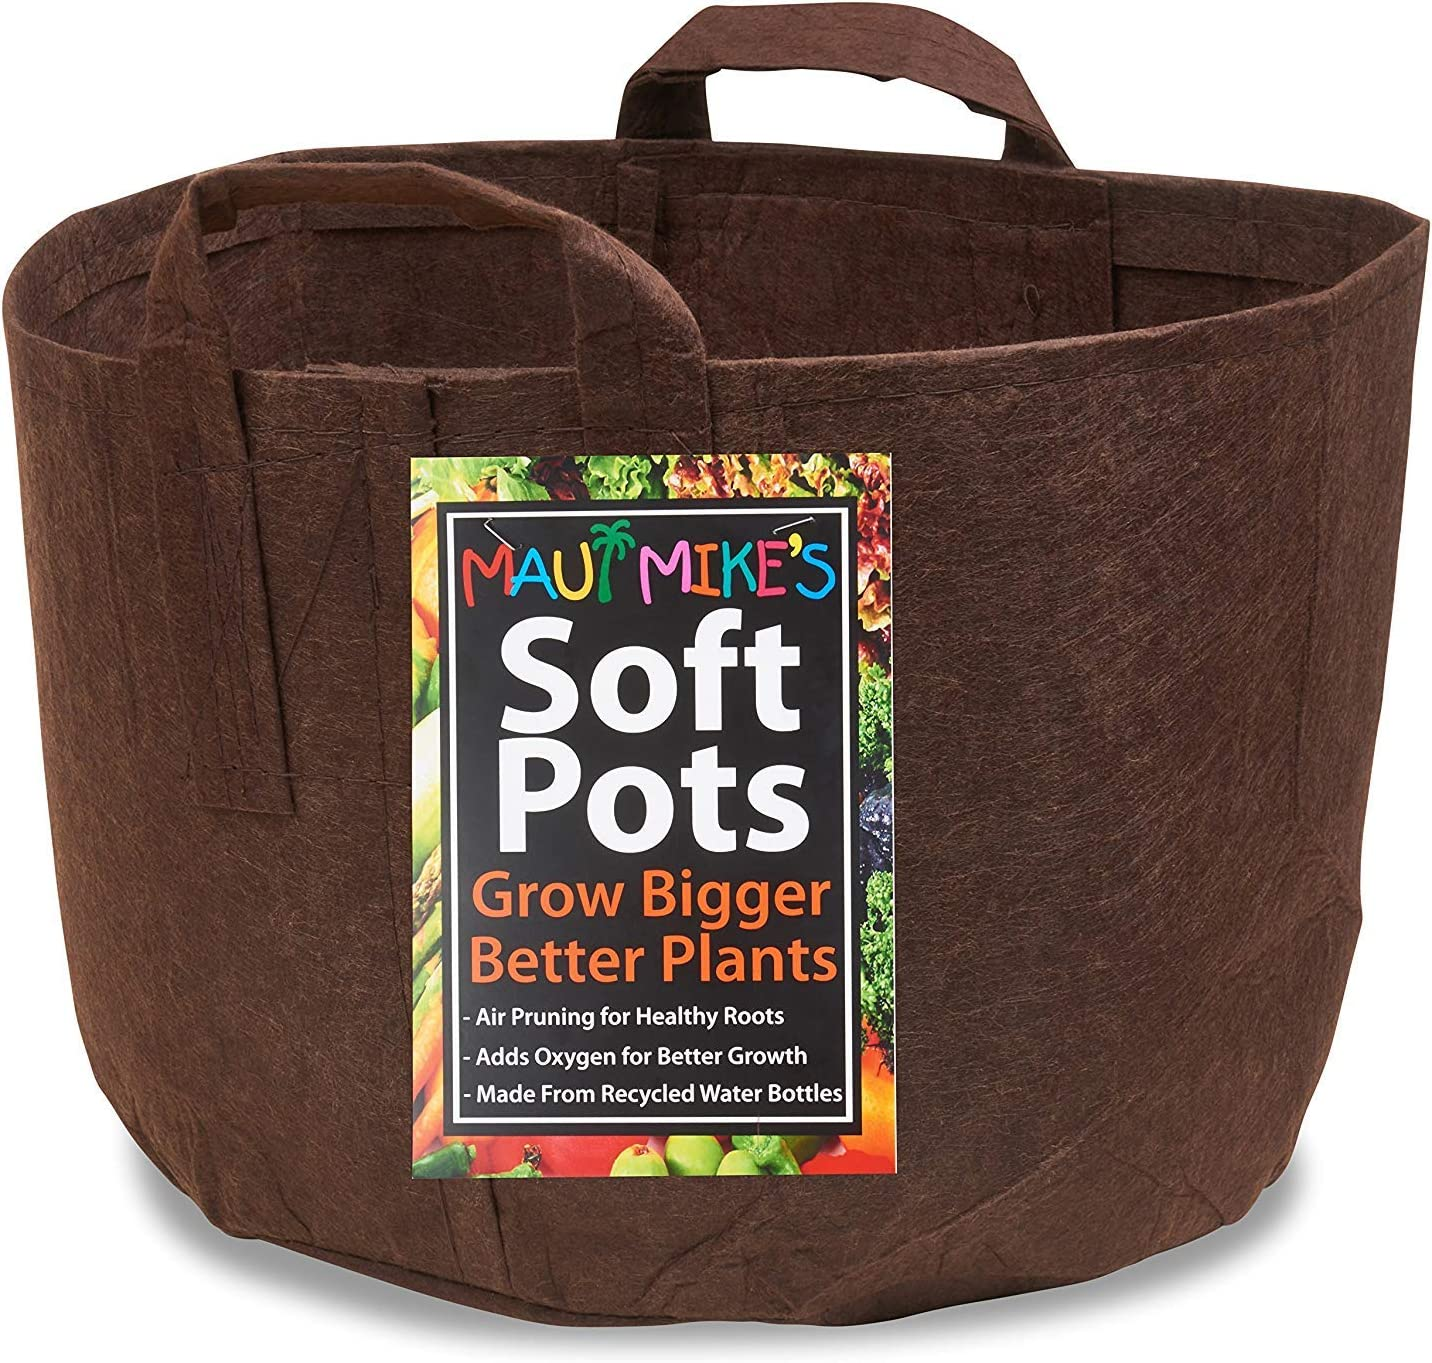 Soft POTS (10 Gallon) Best Fabric Aeration Garden POTS from Maui Mike's. Thicker Fabric and Sewn Handles for Easy Moving. Grow Bigger and Faster Tomatoes,Veggies and Herbs in Soft POTS.